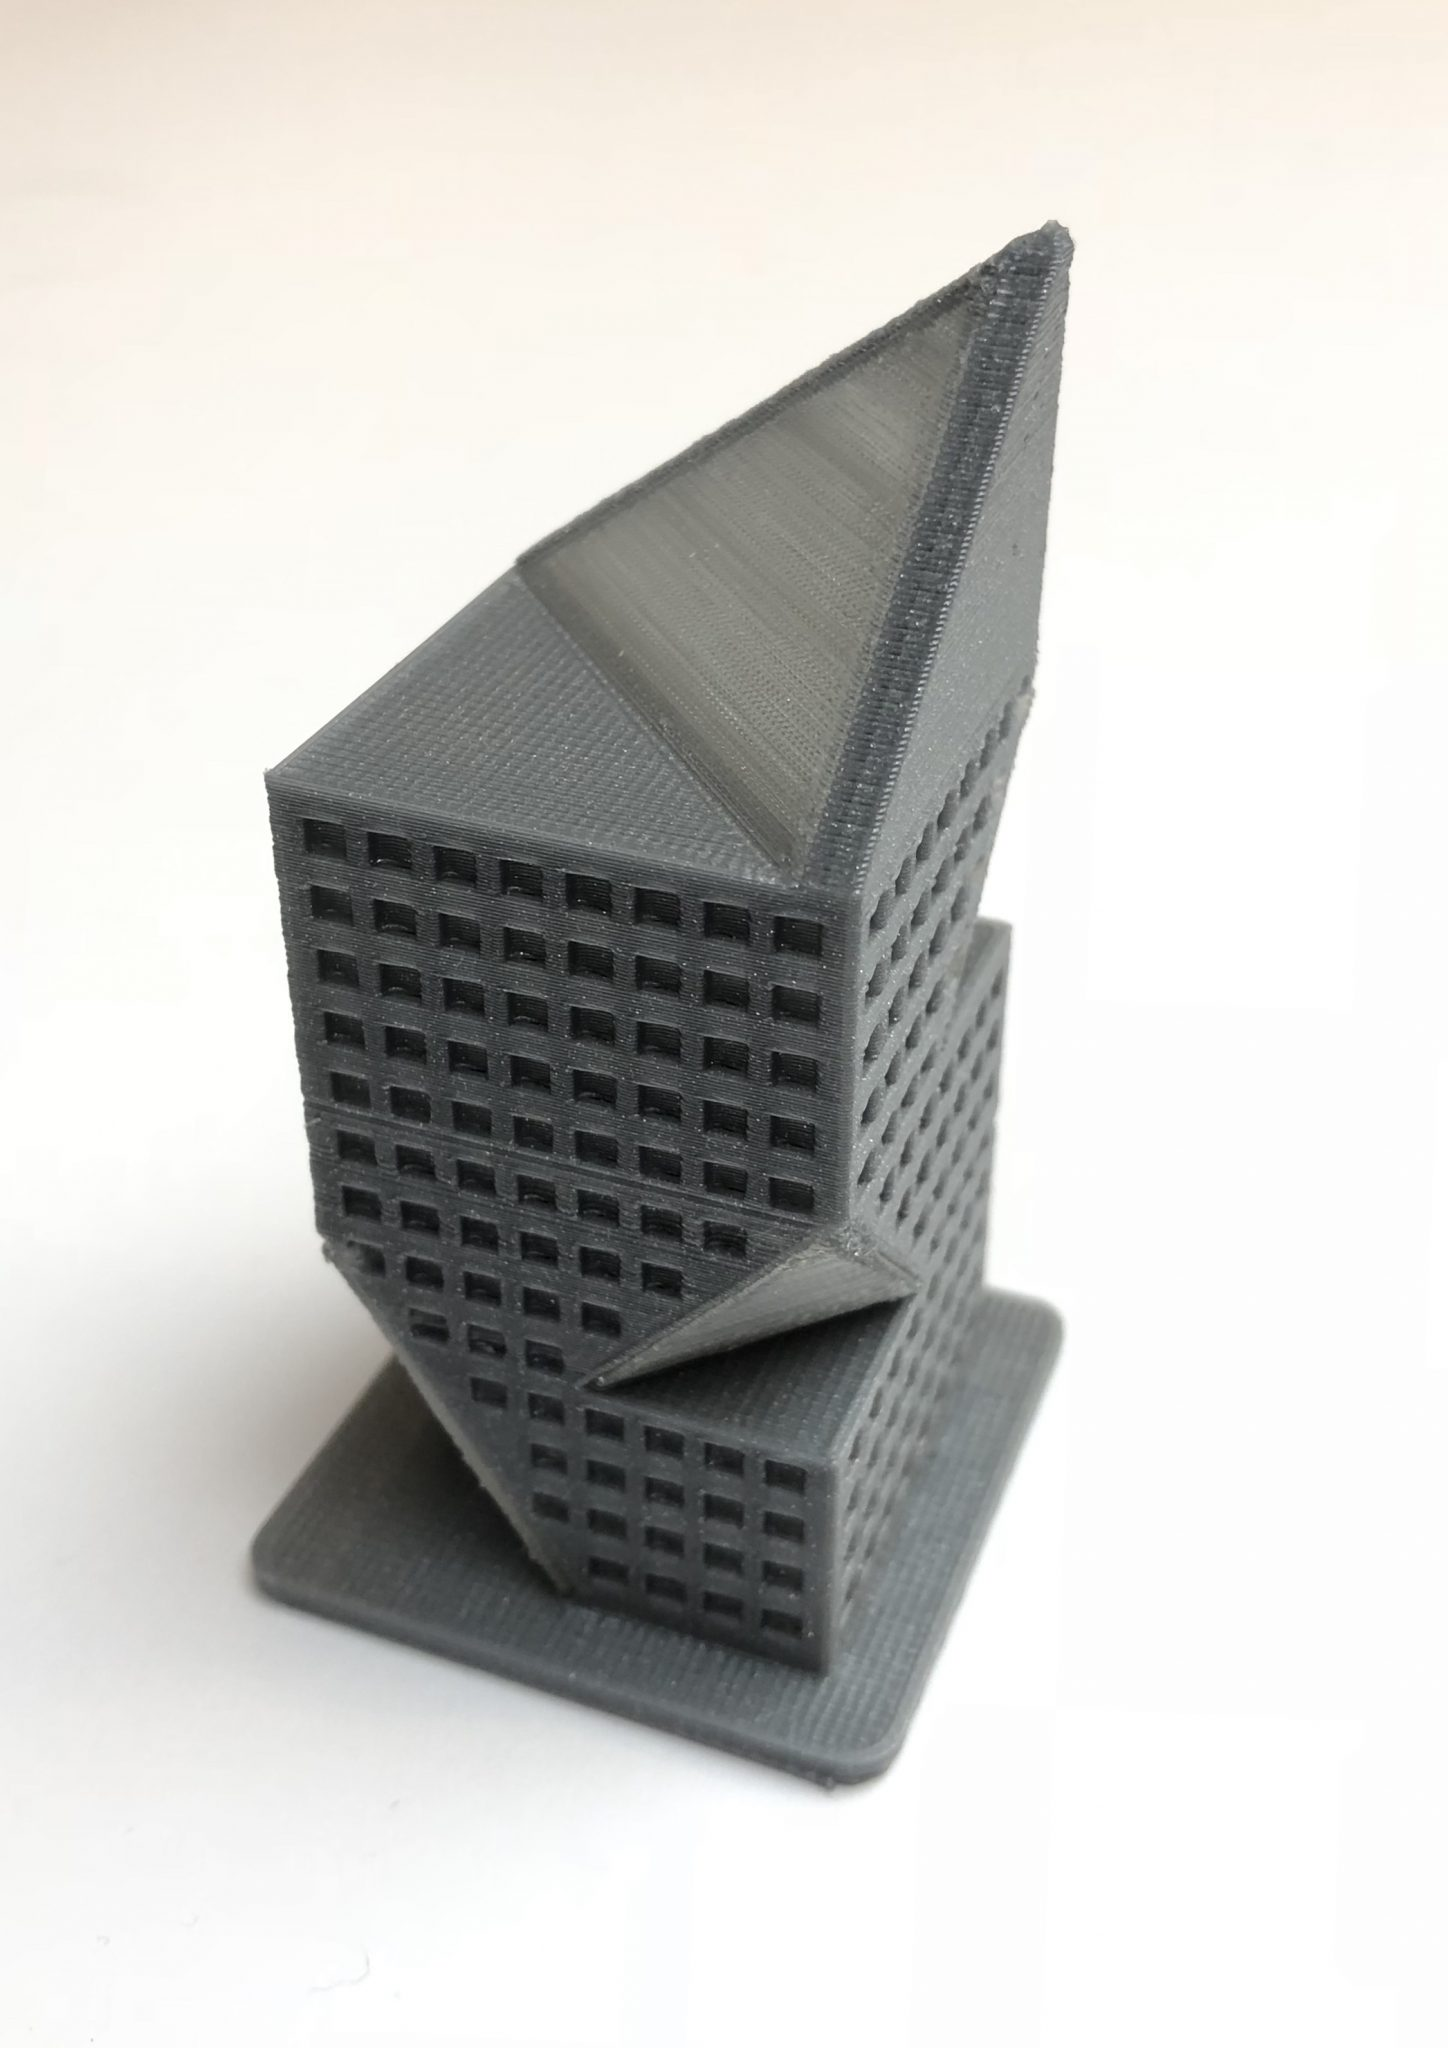 3D printed architectural model printed on the ZMorph VX. Photo via ZMorph